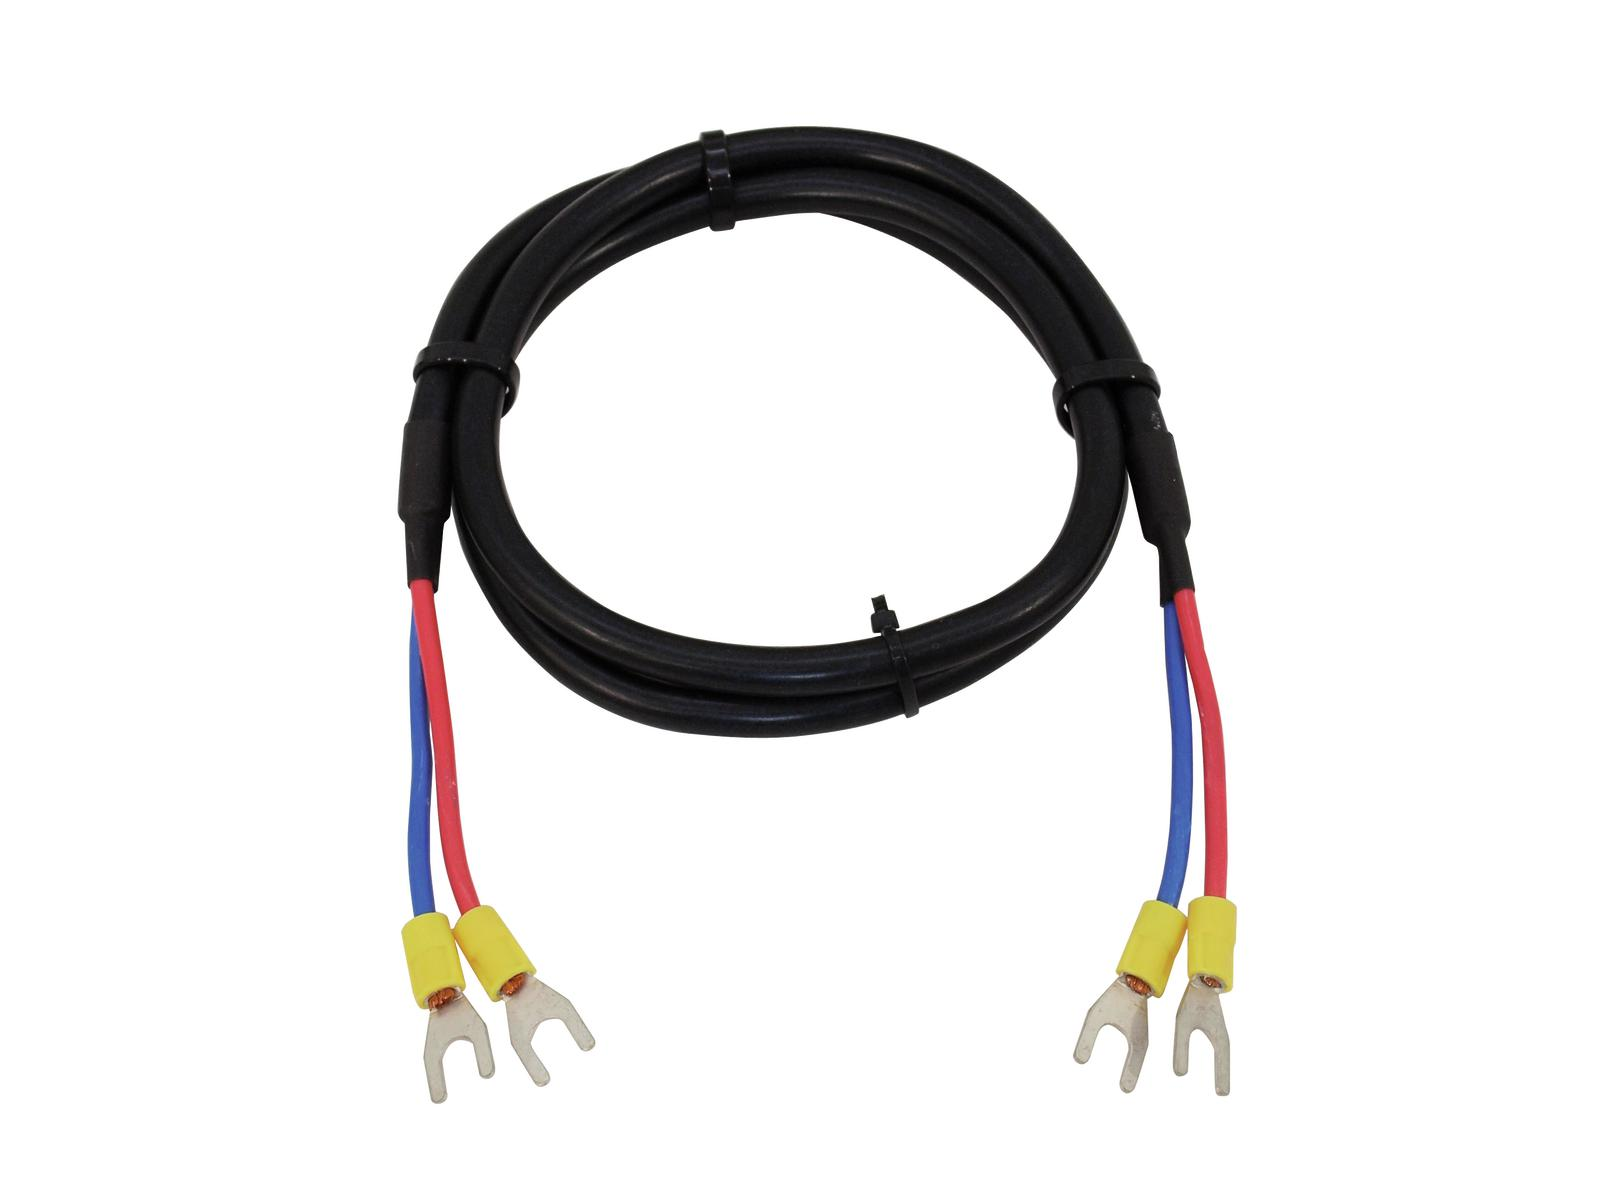 OMNITRONIC Y-Cable for OMNITRONIC LUB-27